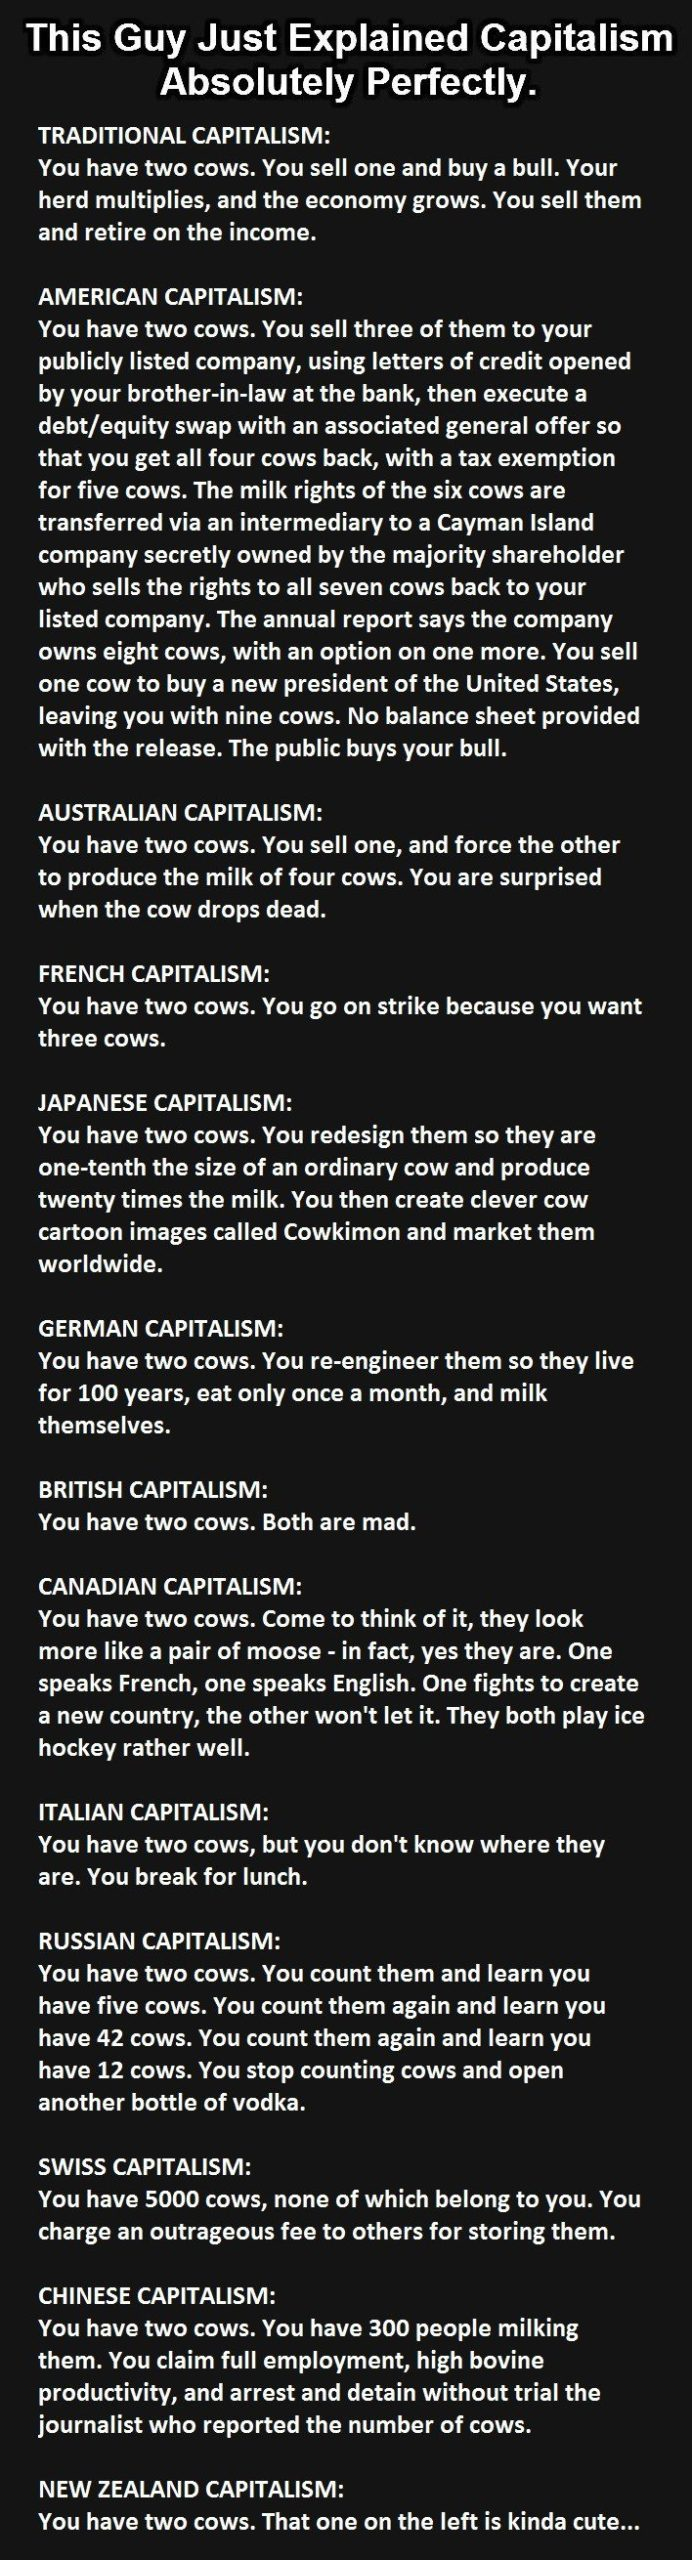 You have 2 cows - capitalism